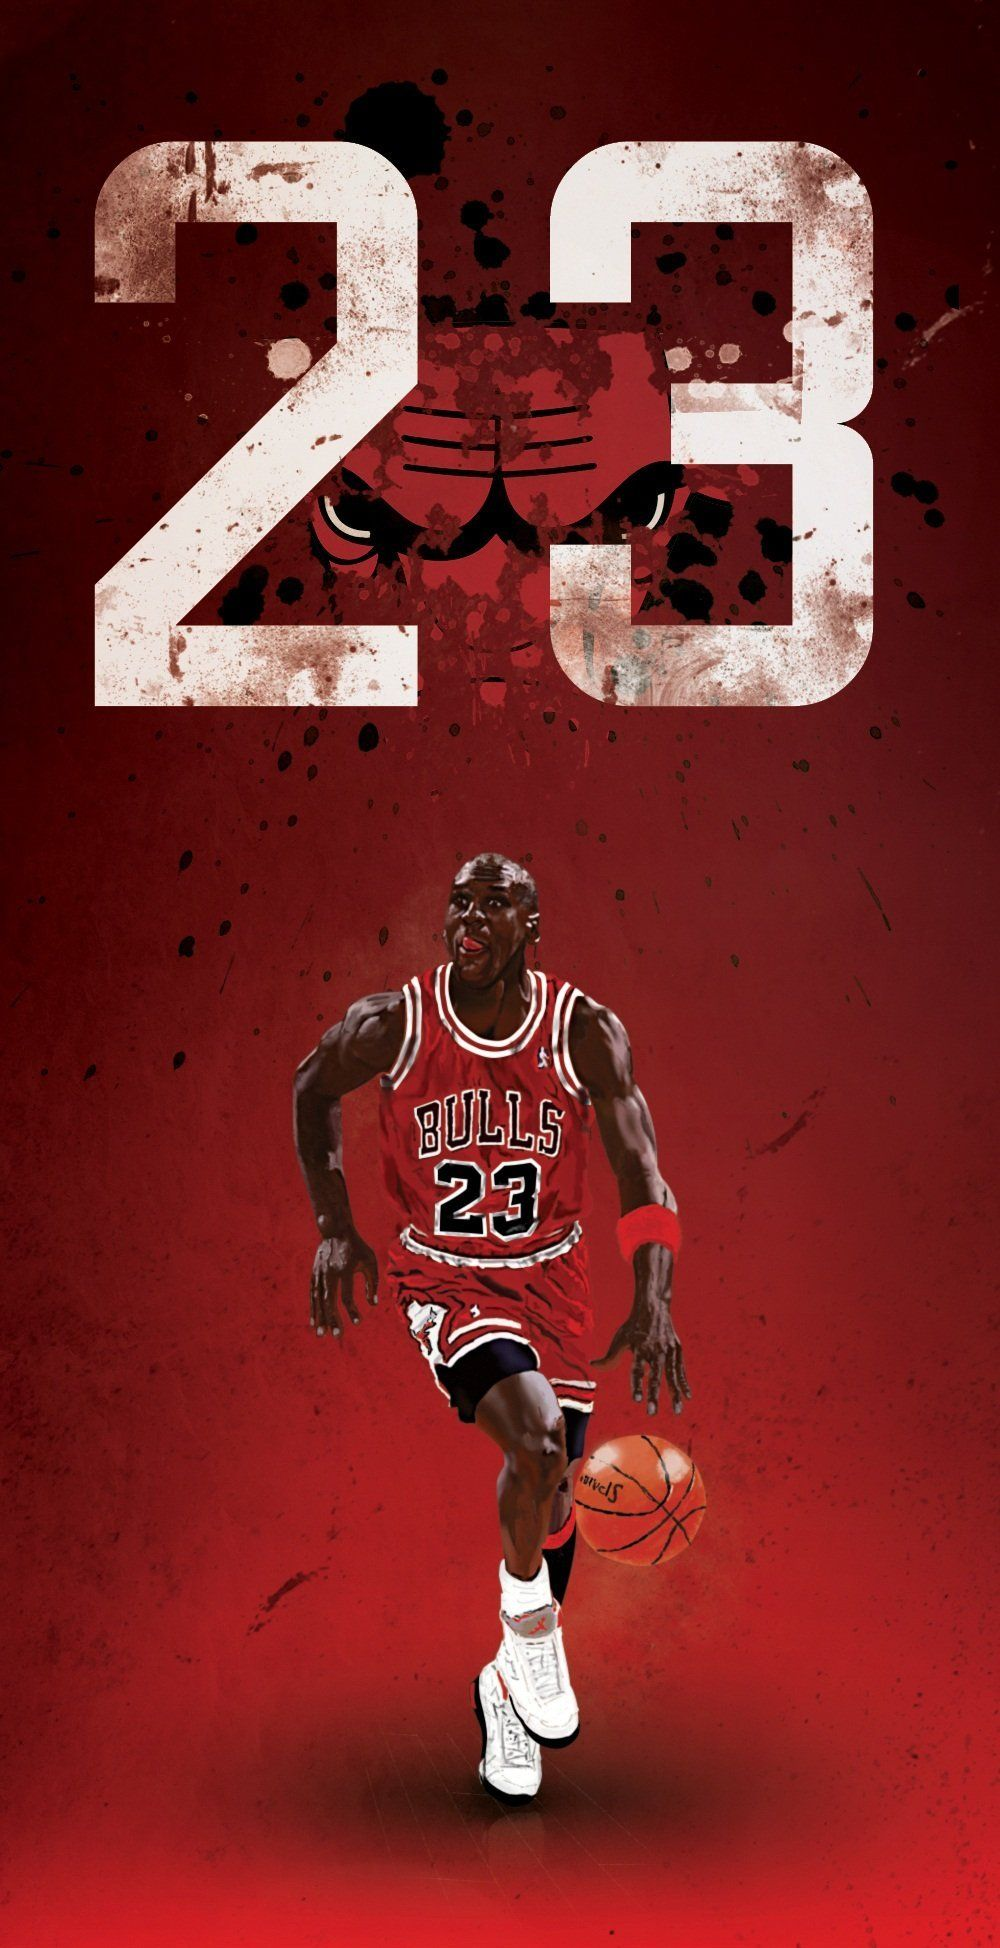 Michael Jordan Wallpaper For Mobile Phone Tablet Desktop Computer And Other Devices Hd And 4k In 2020 Michael Jordan Poster Michael Jordan Art Jordan Logo Wallpaper